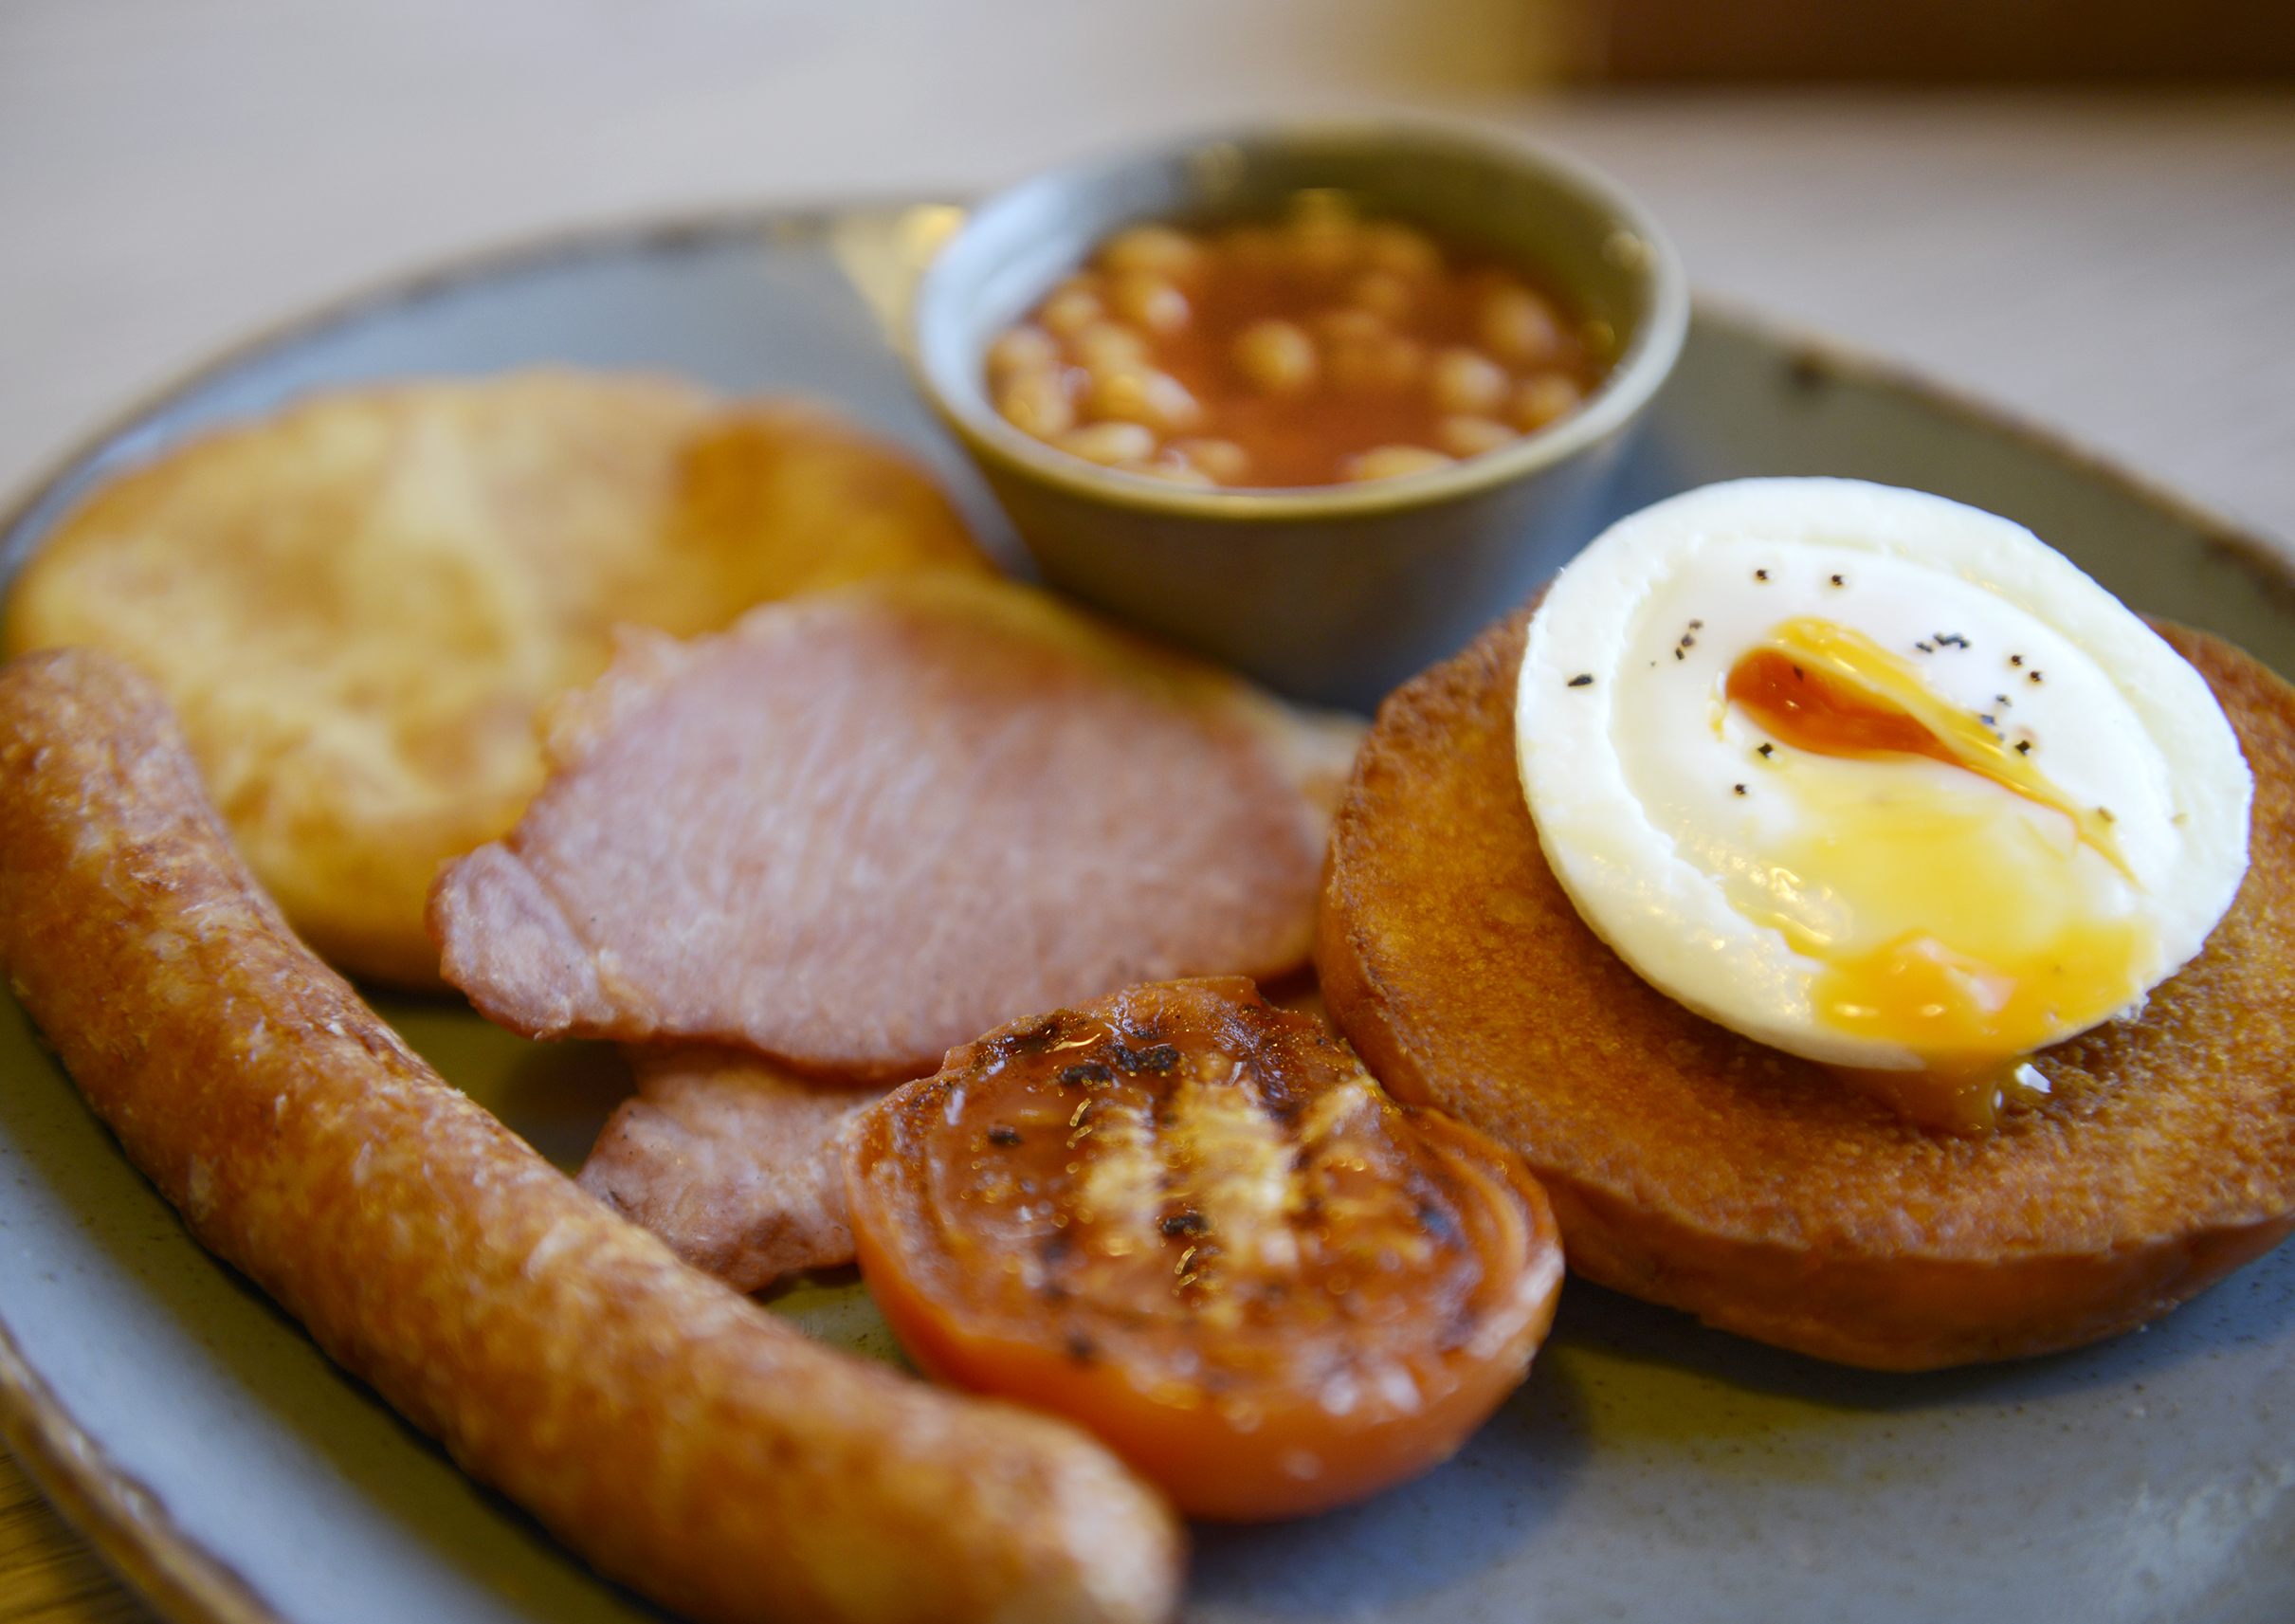 National HotBreakfast Month - It's National Hot Breakfast Month and what better excuse do you need to come try out our NEW breakfast options! *Warning the following image may make your mouth water* #nationalhotbreakfastmonth